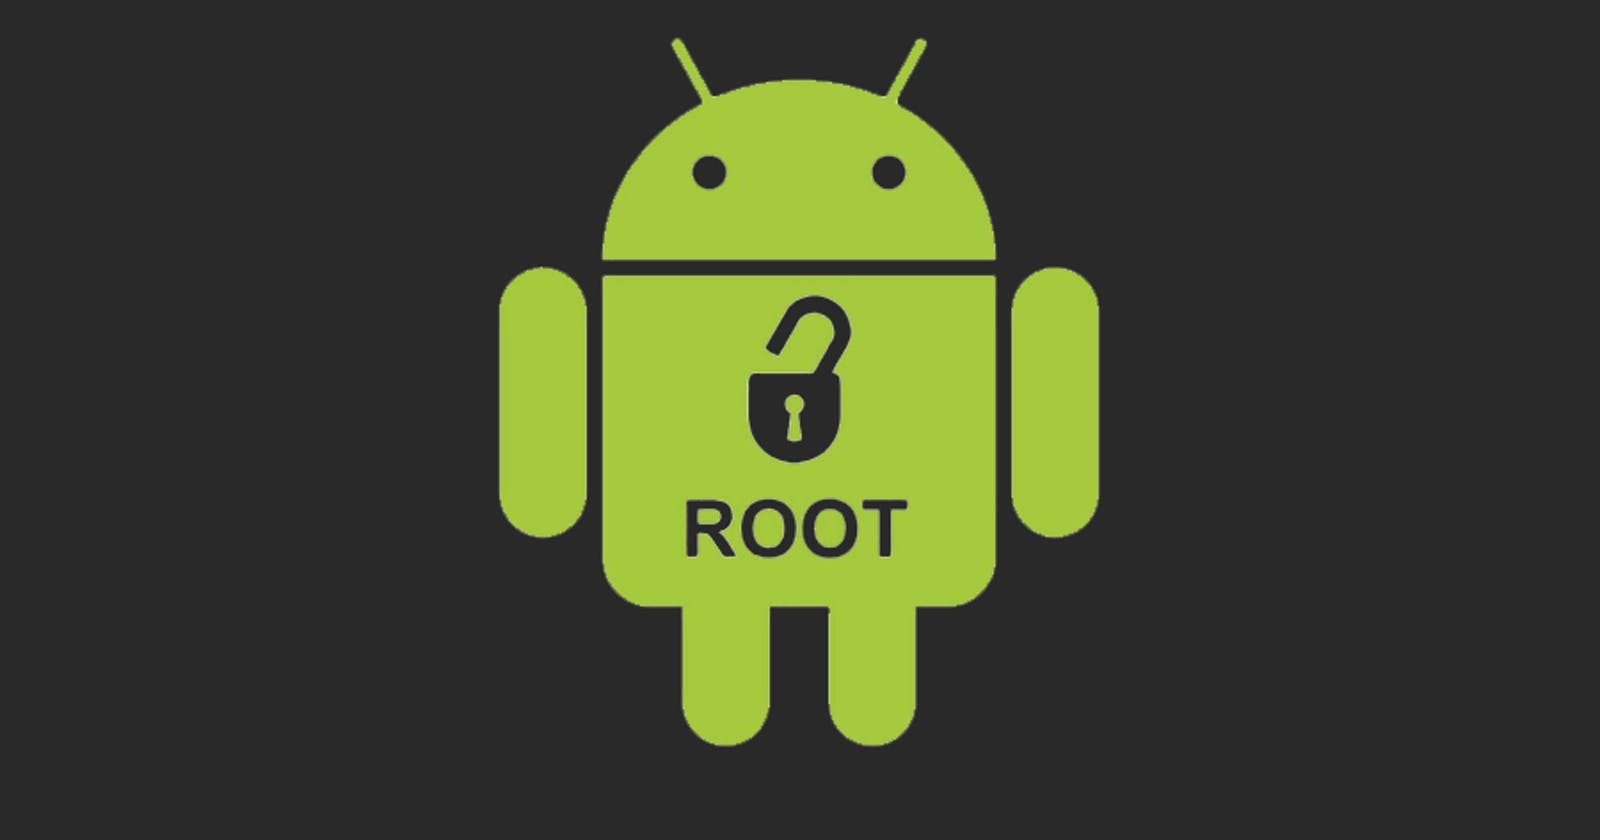 My firsthand experience with Android rooting